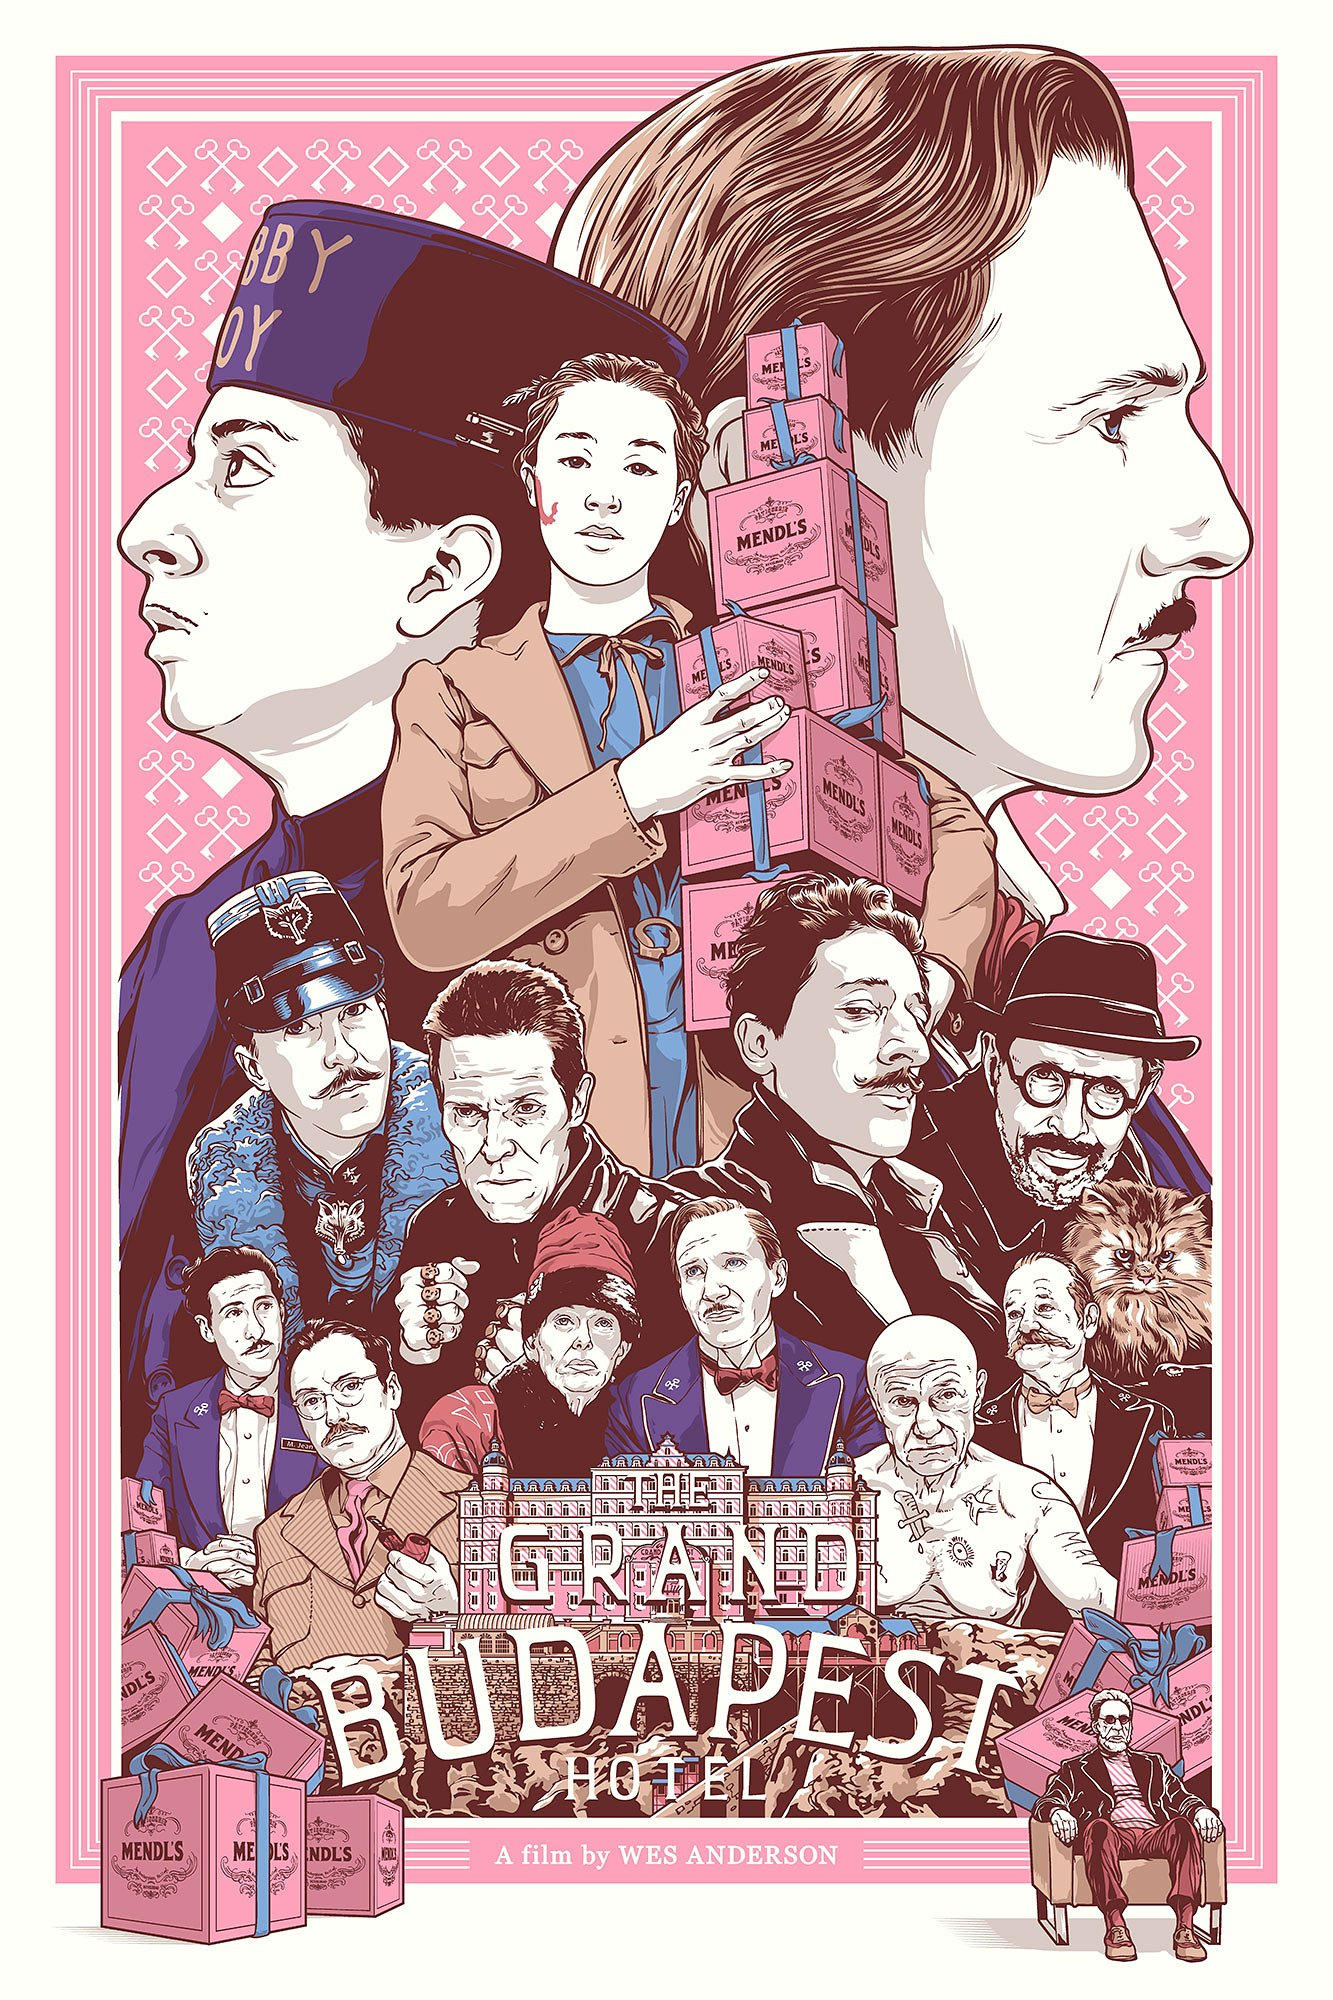 wes anderson fan art illustration oldskull 3